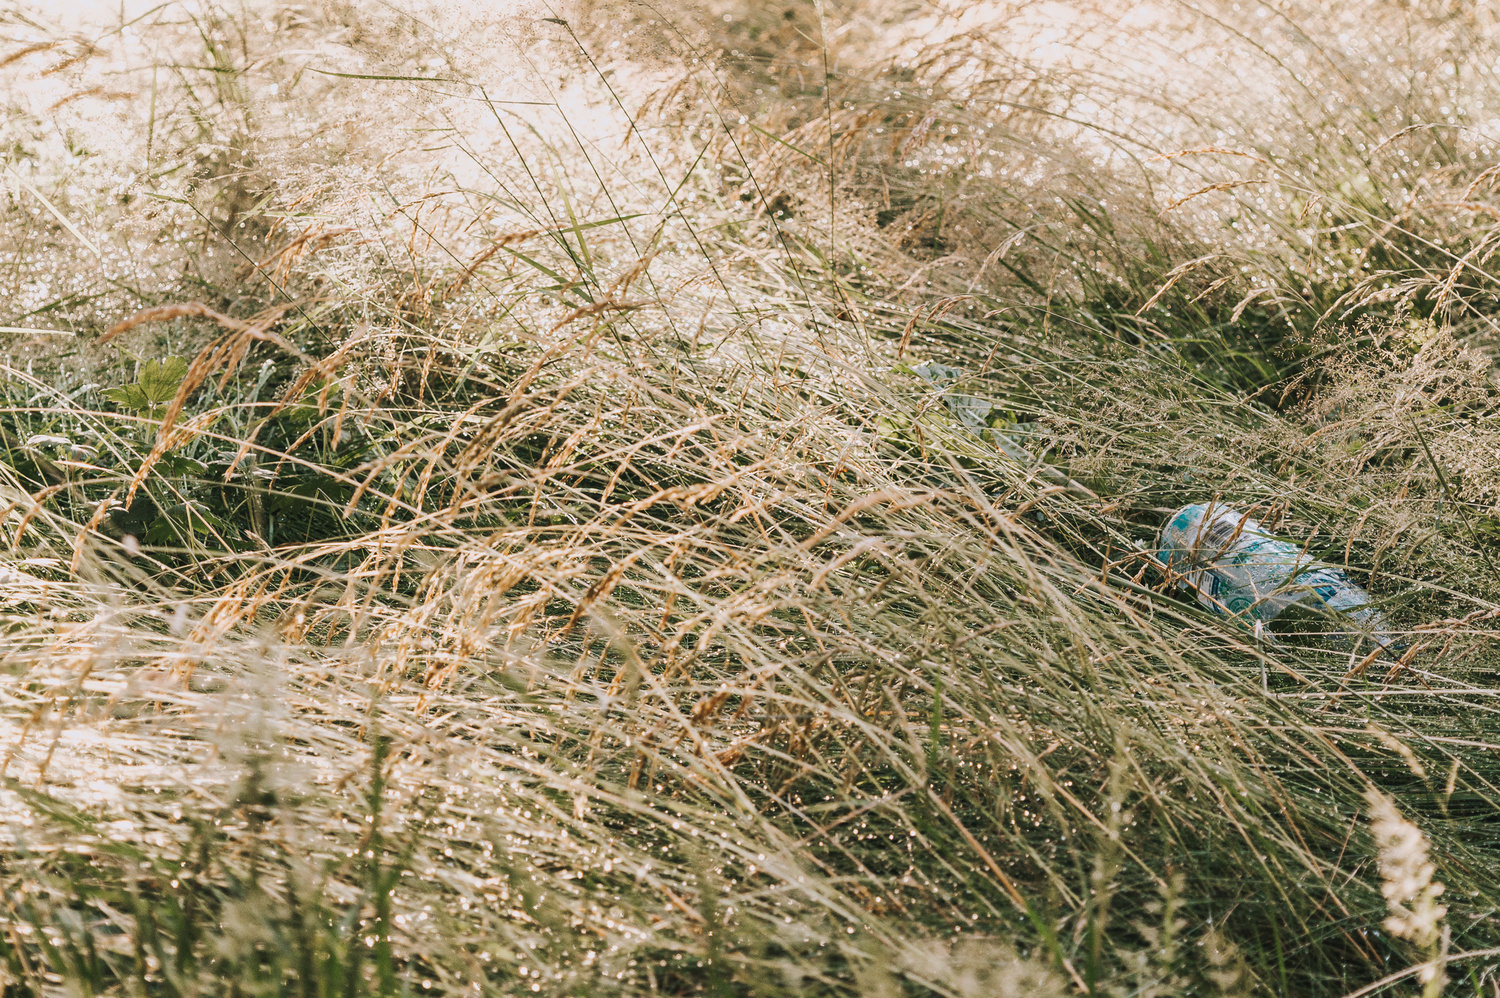 A plastic bottle discarded in tall grasses